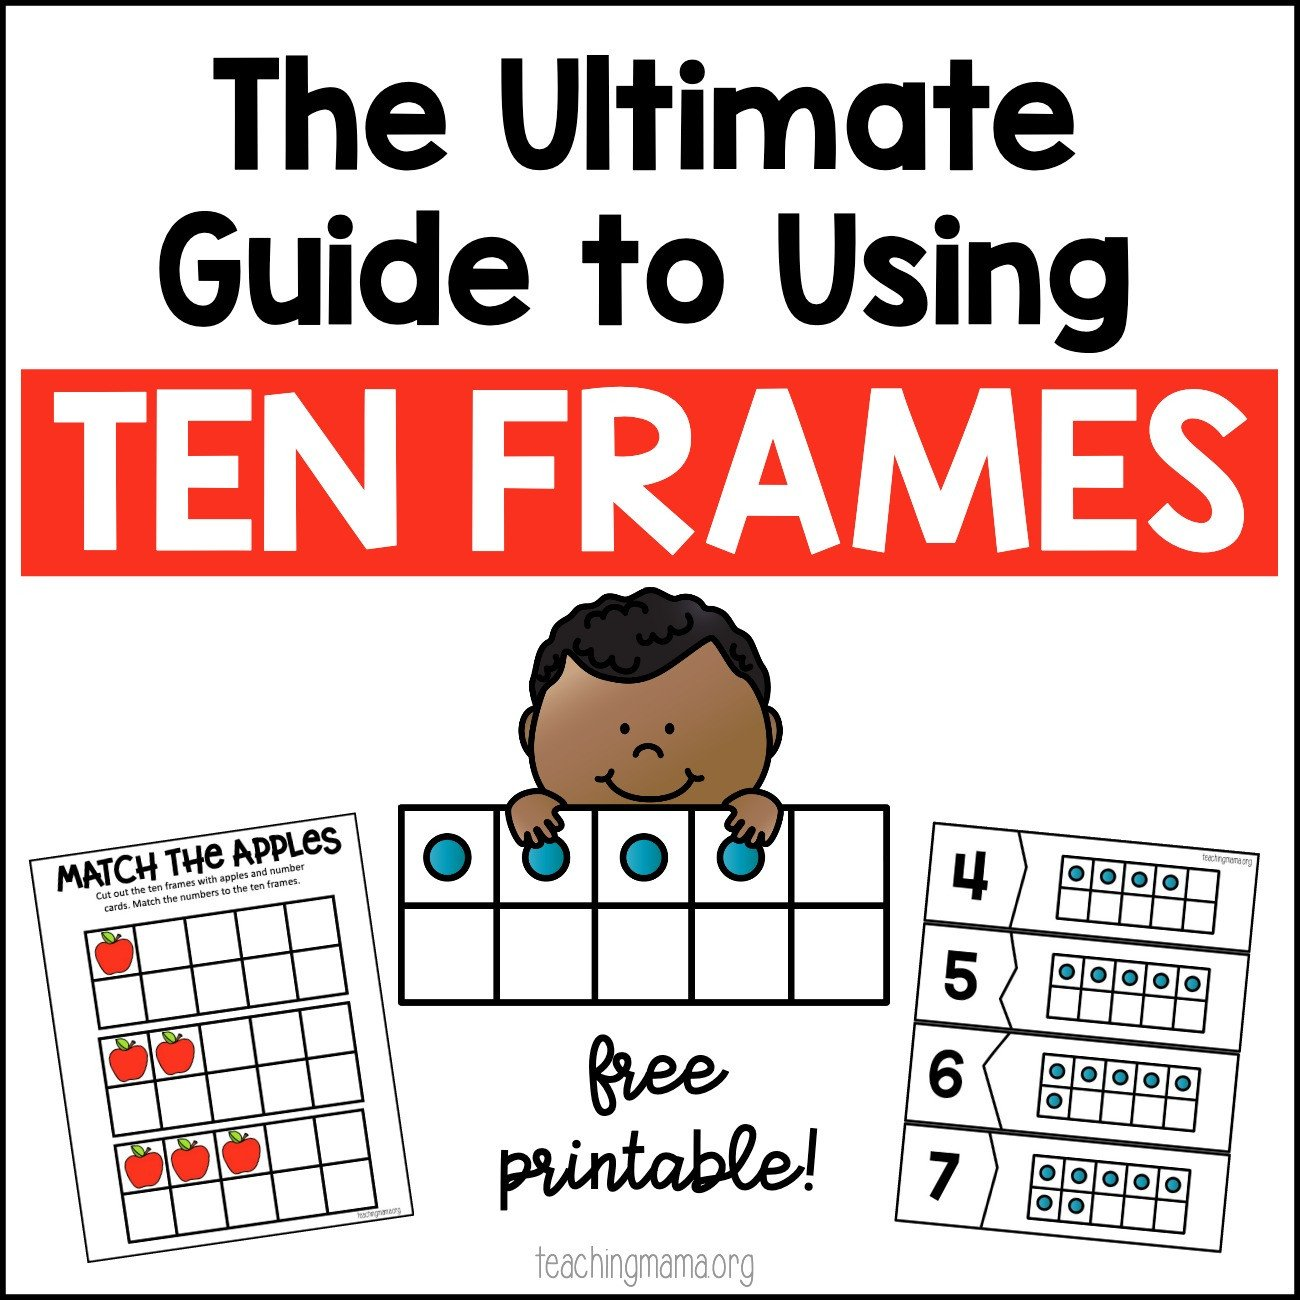 Blank Ten Frame Worksheets the Ultimate Guide to Using Ten Frames